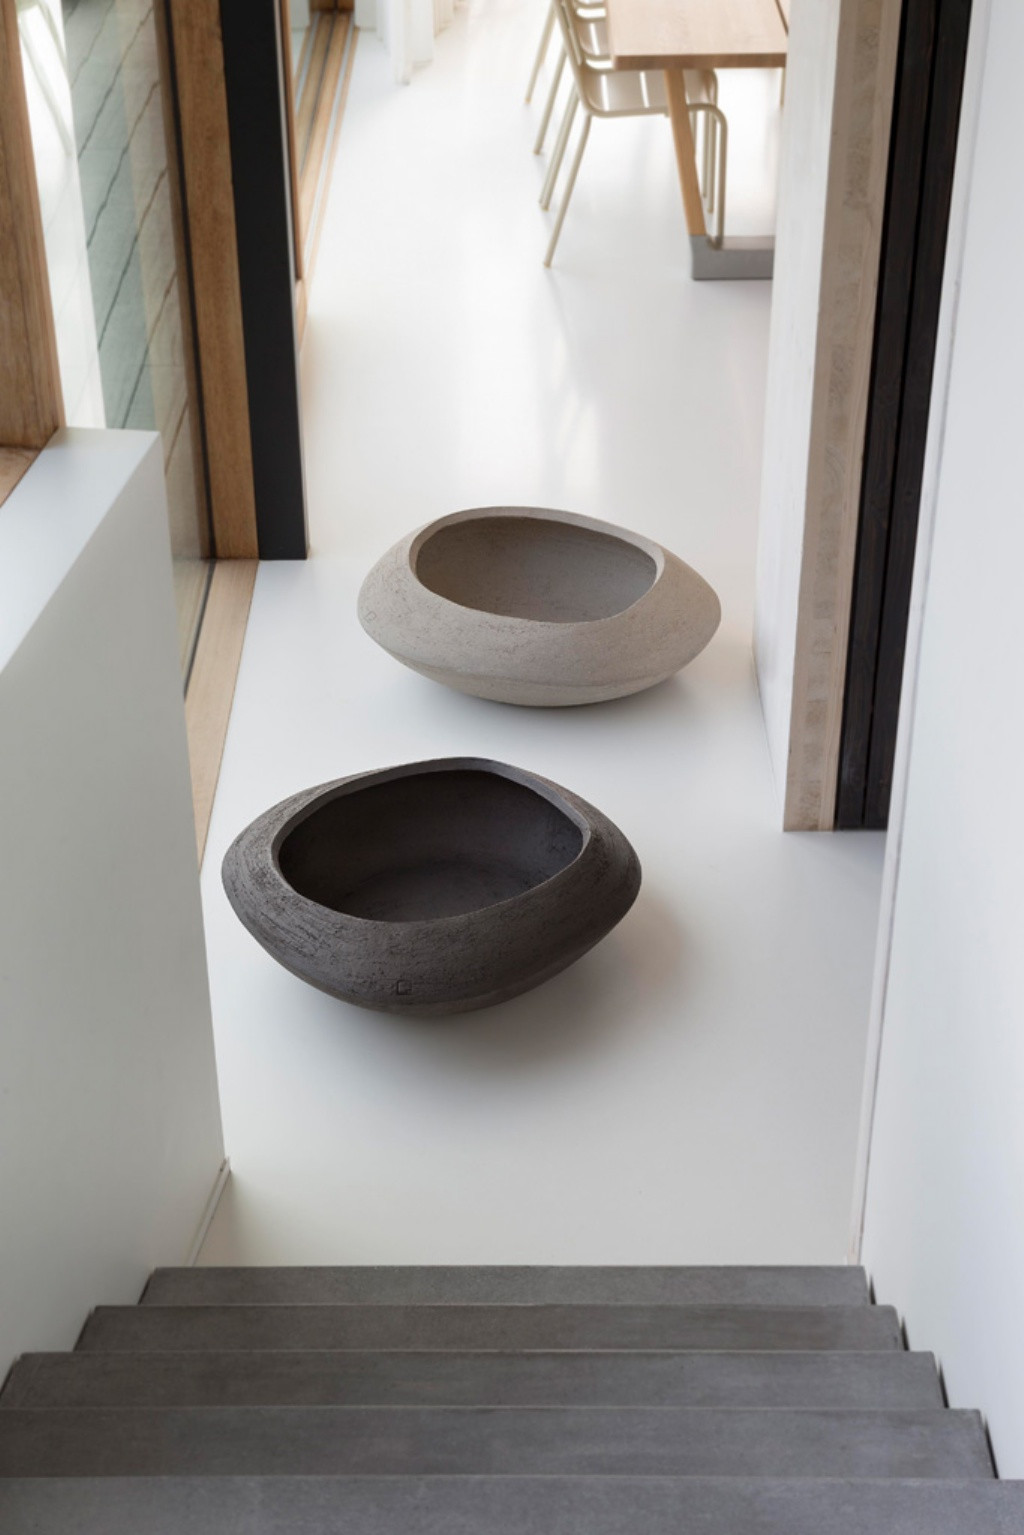 Long Floor Vases Online India Of atelier Vierkant Intended for Oostduinkerke Dune Series Ii